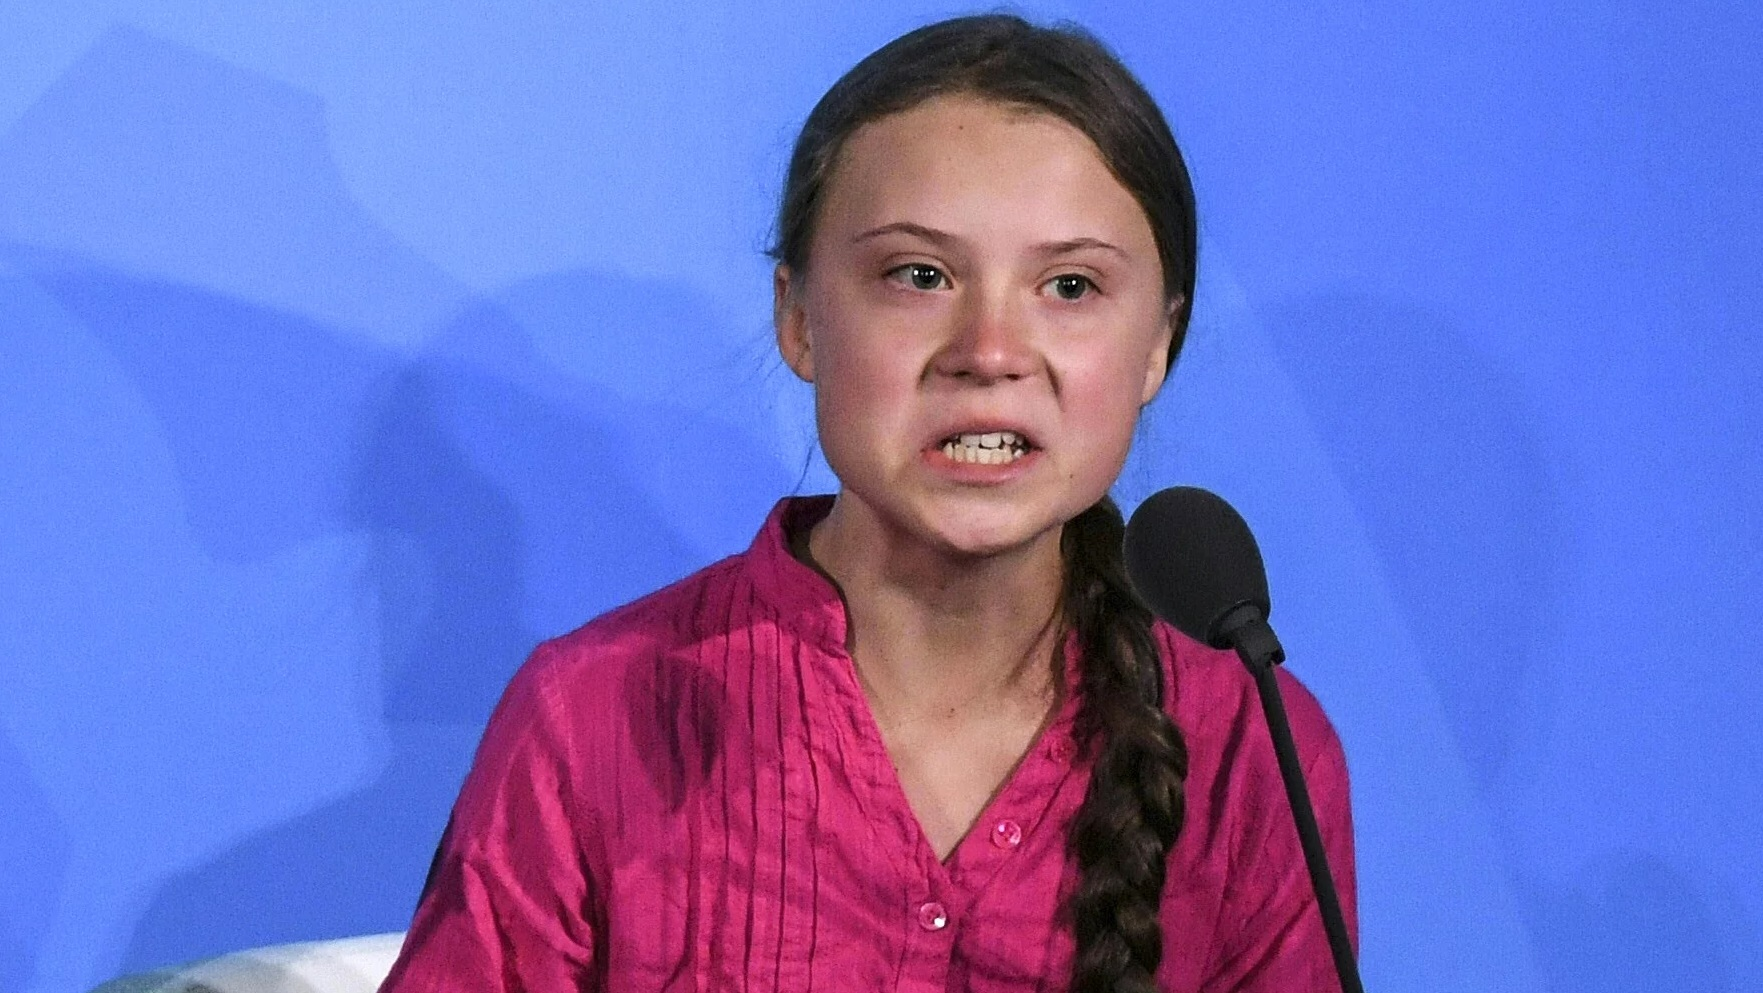 Image: College professor pens scathing and brilliant 'open letter' to teen climate activist Greta Thunberg